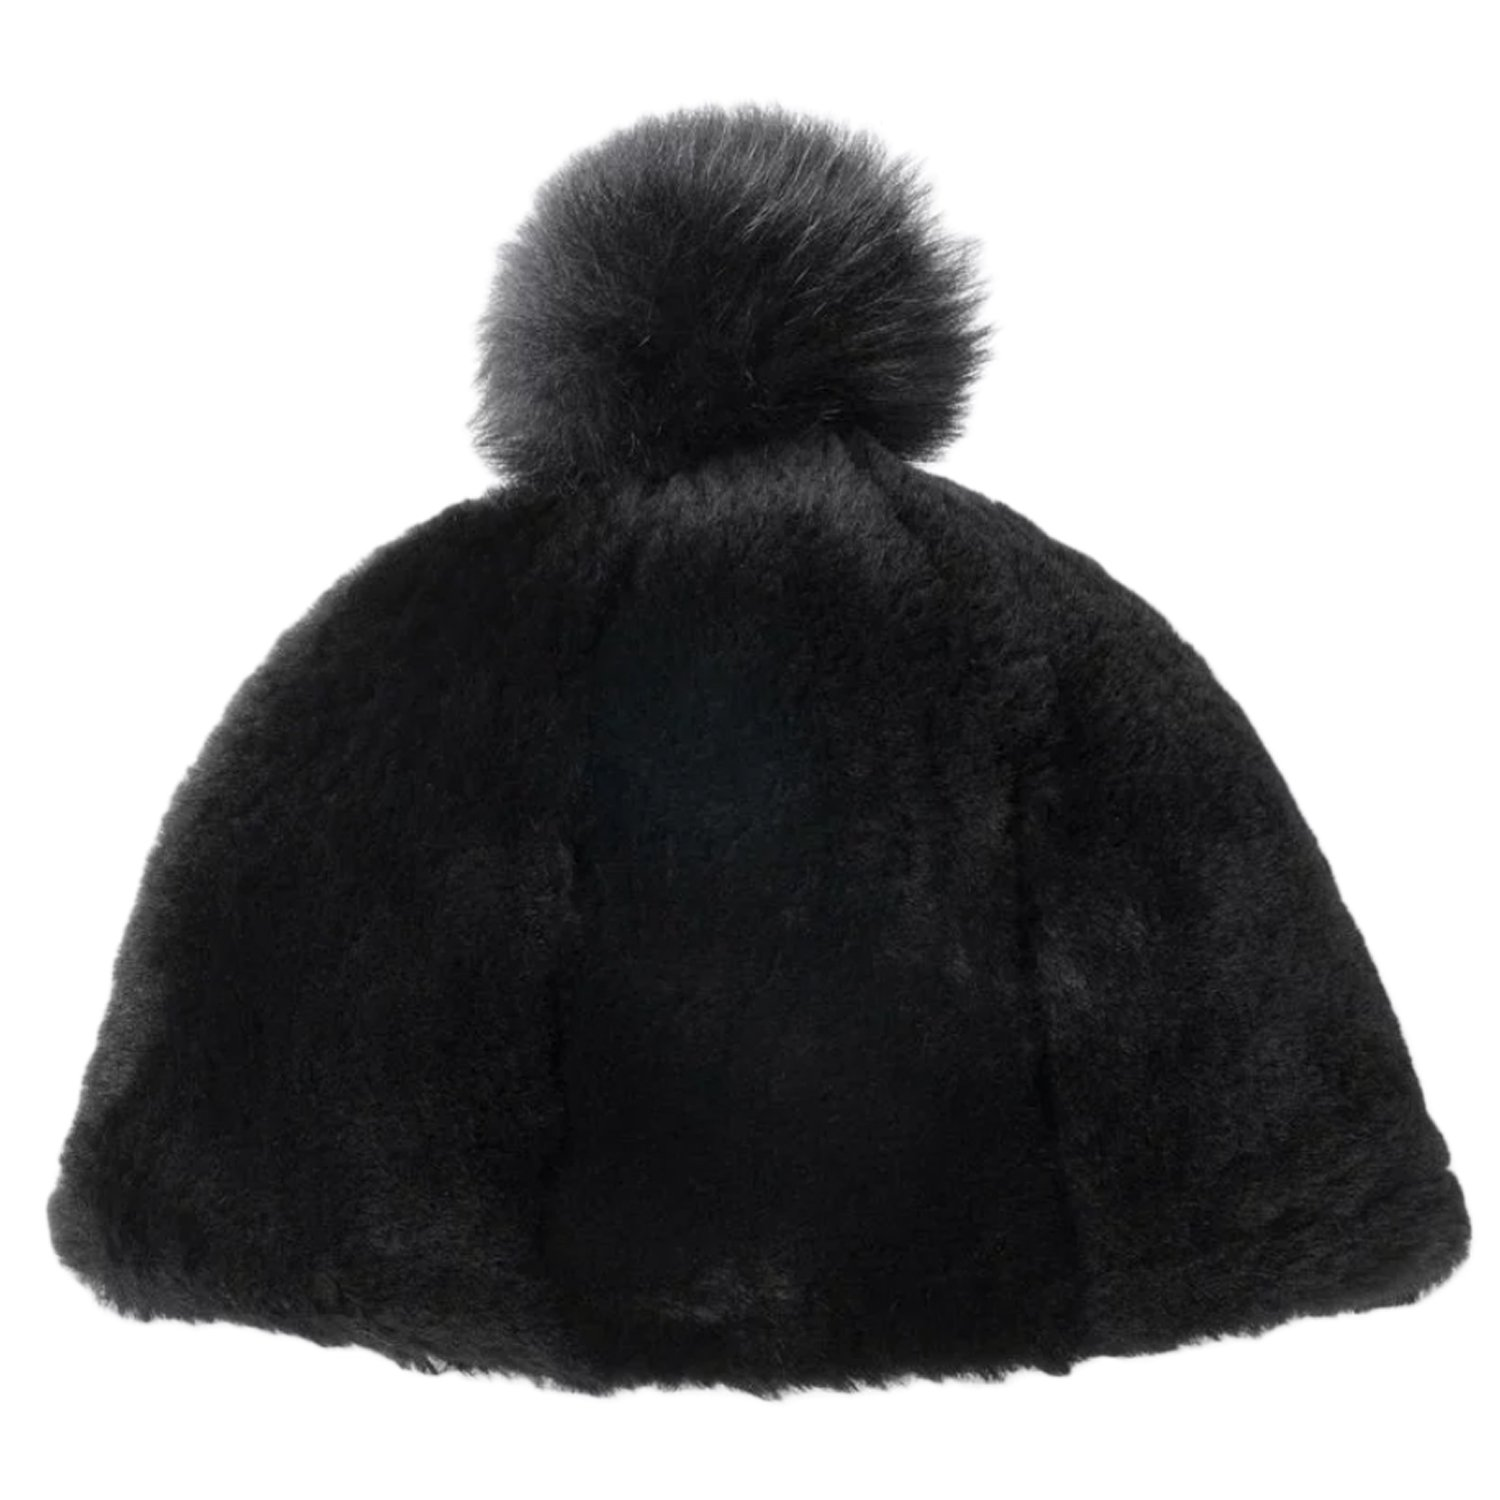 UGG Women's Exposed Sheepskin Beanie Black SM/MD by UGG